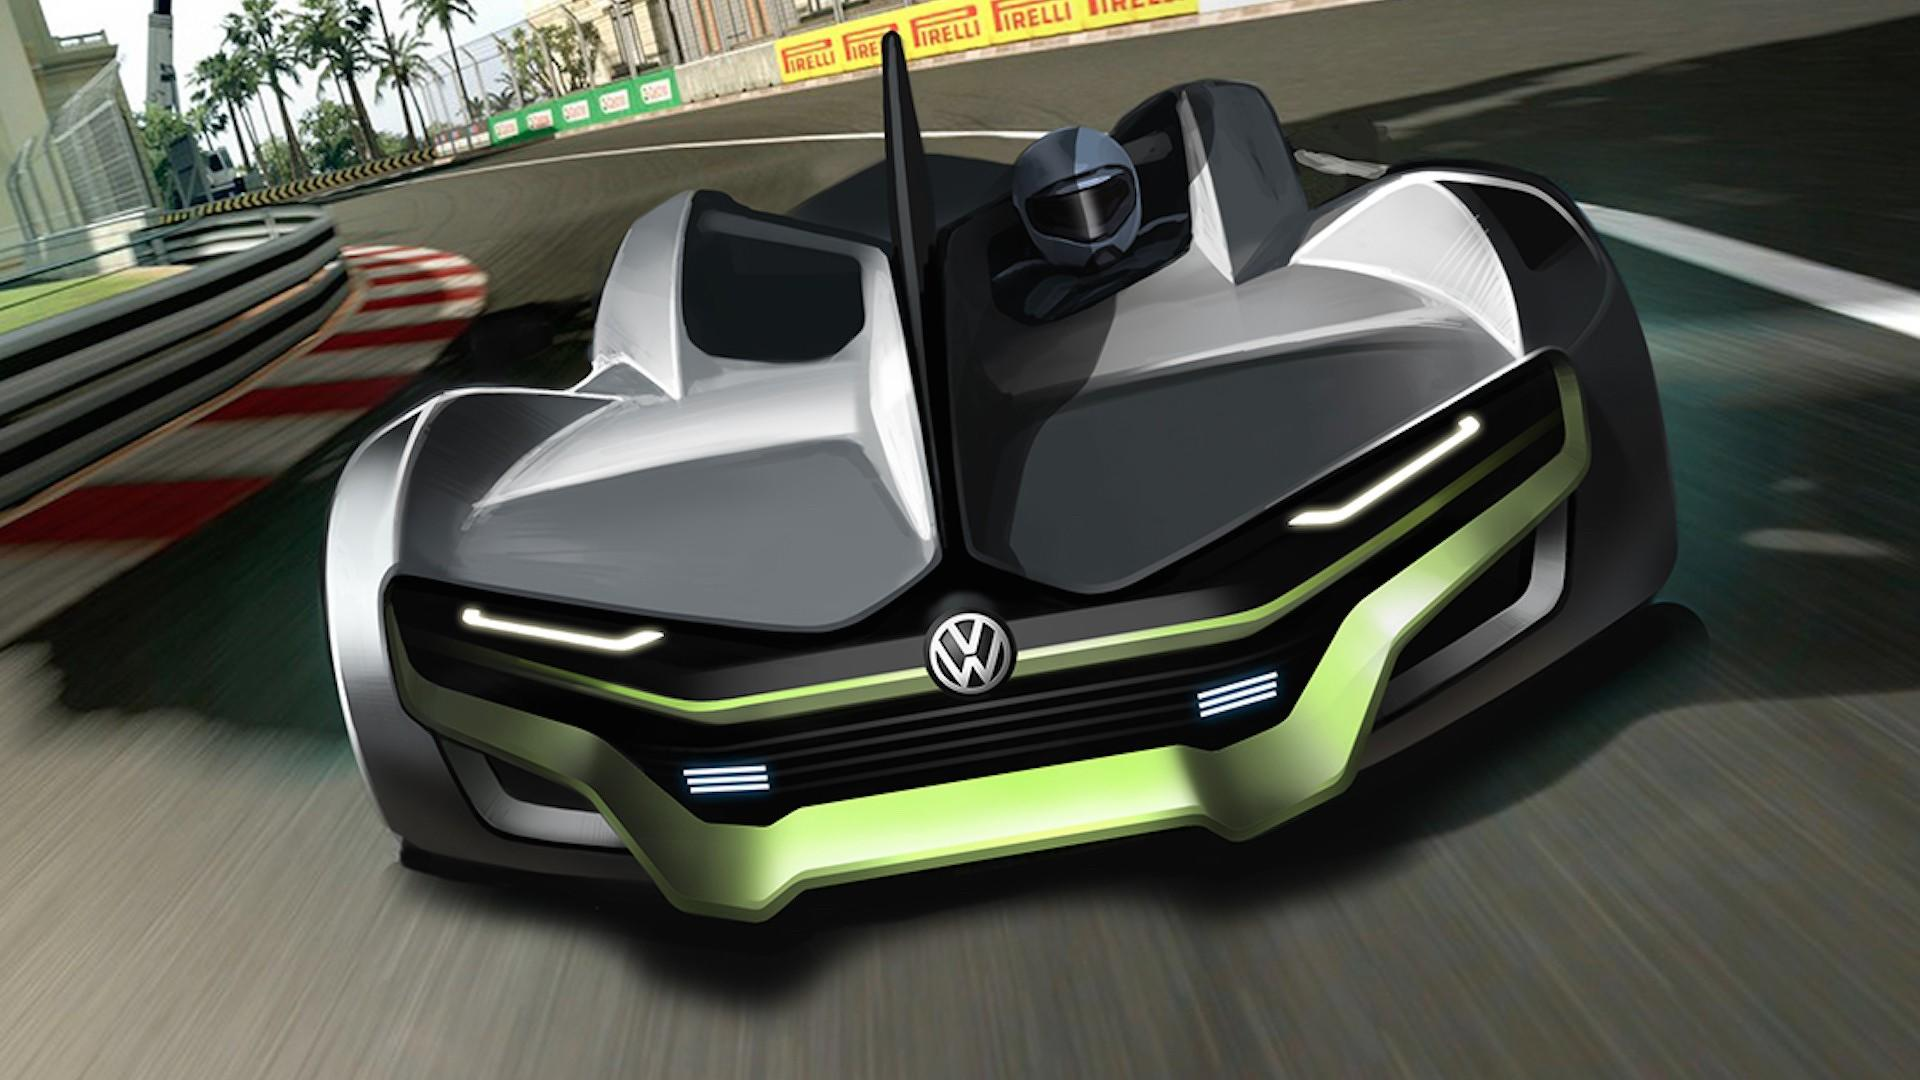 Car Wallpapers Reddit 2023 Vw Sports Car Rendering Looks Ready For The Track